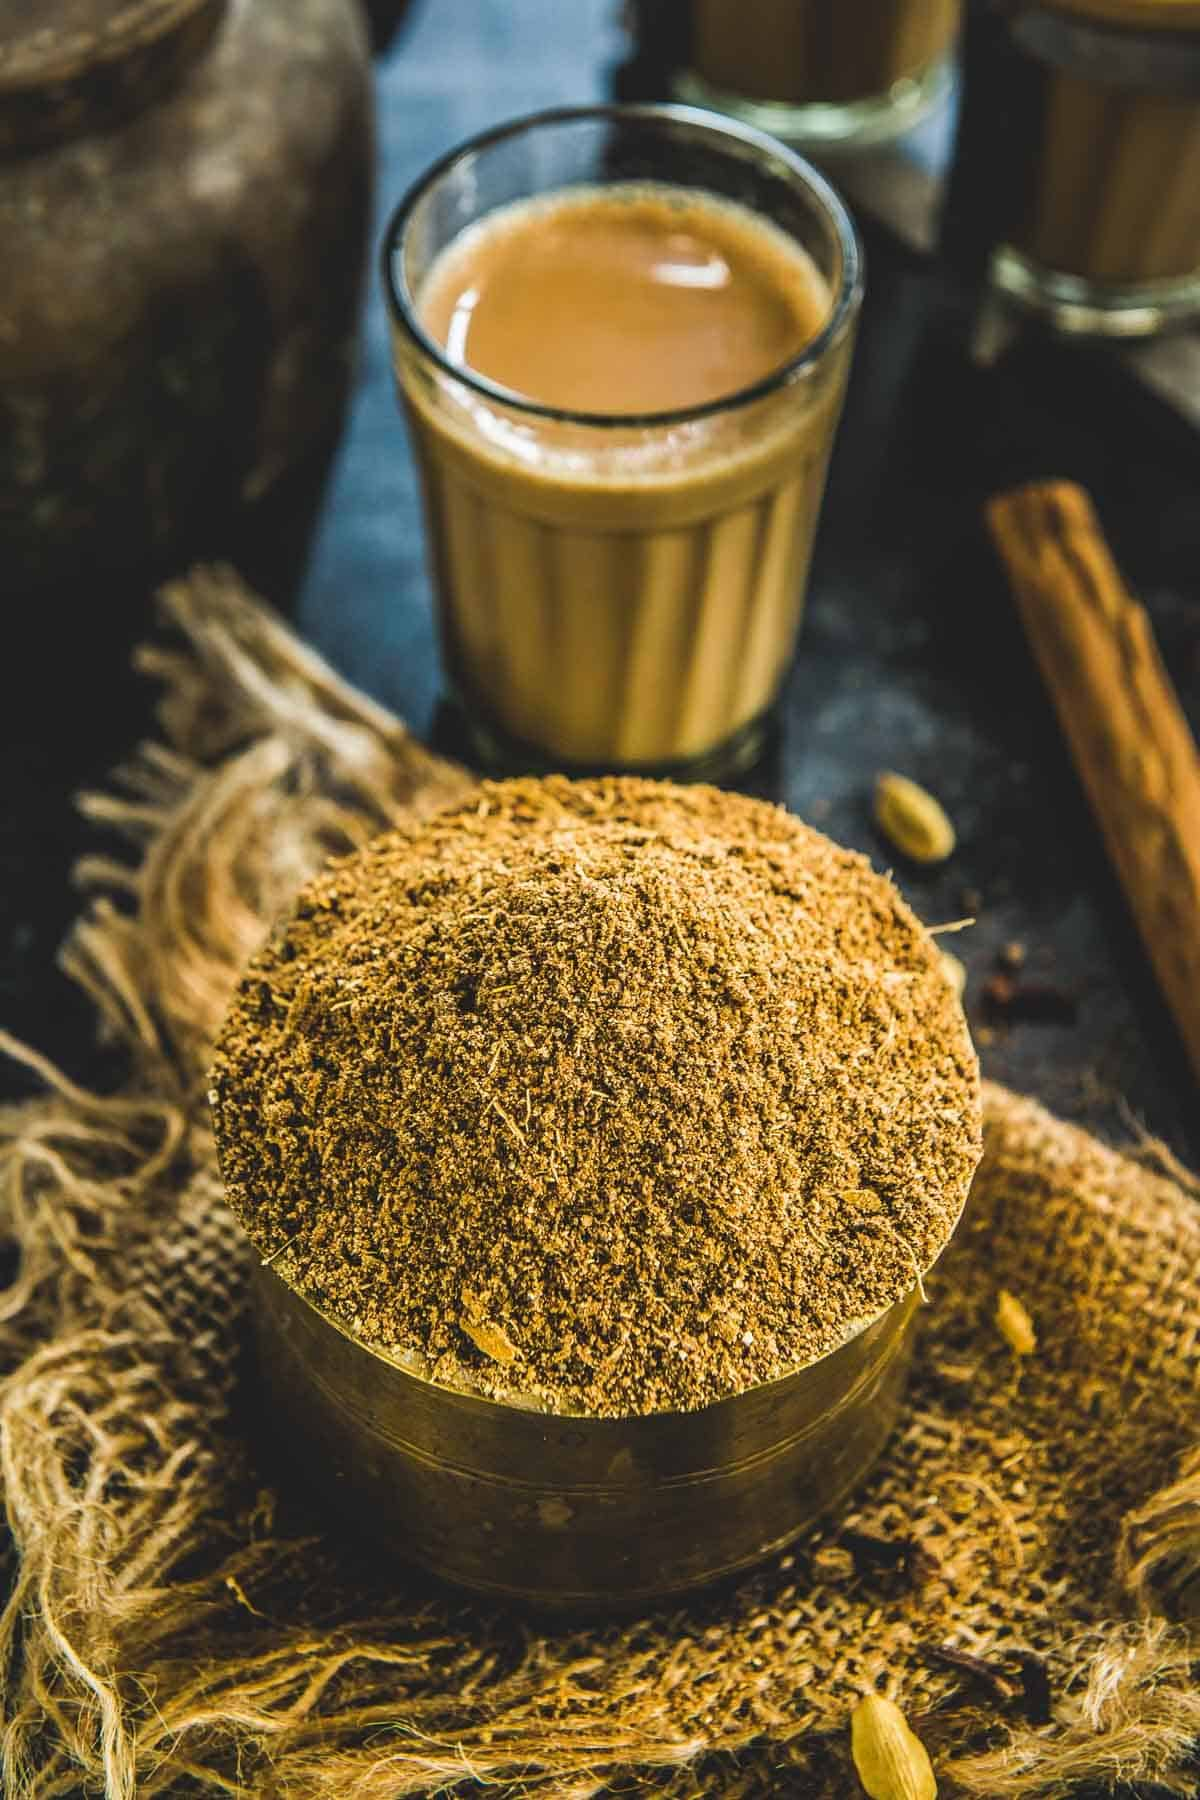 Masala chai spice mix served in a bowl.